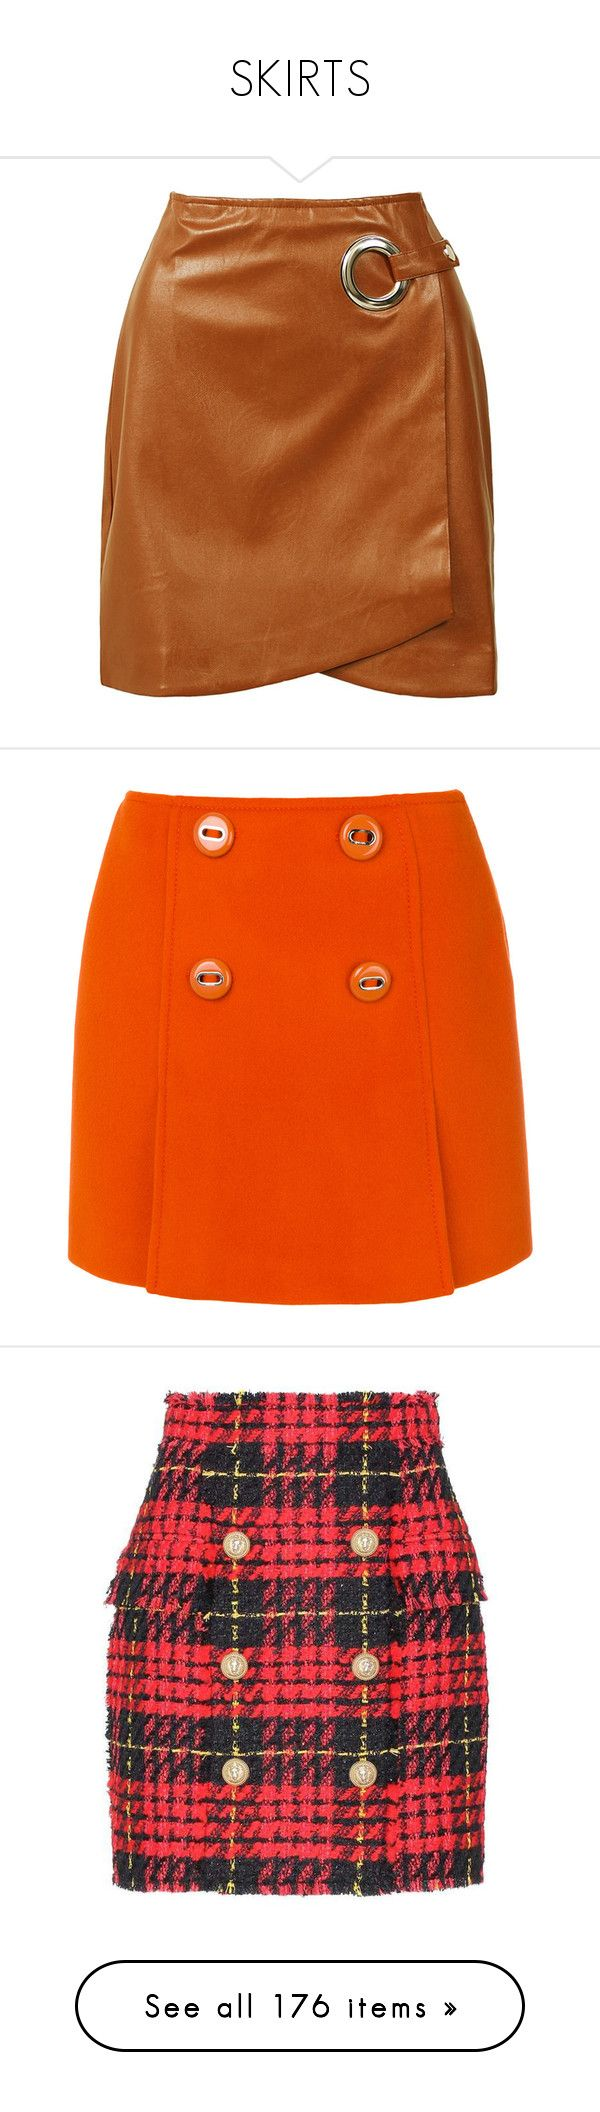 """""""SKIRTS"""" by kareng-357 ❤ liked on Polyvore featuring skirts, mini skirts, wrap skirt, leather look mini skirt, short wrap skirt, faux leather mini skirt, back zipper skirt, orange, prada and short mini skirts"""